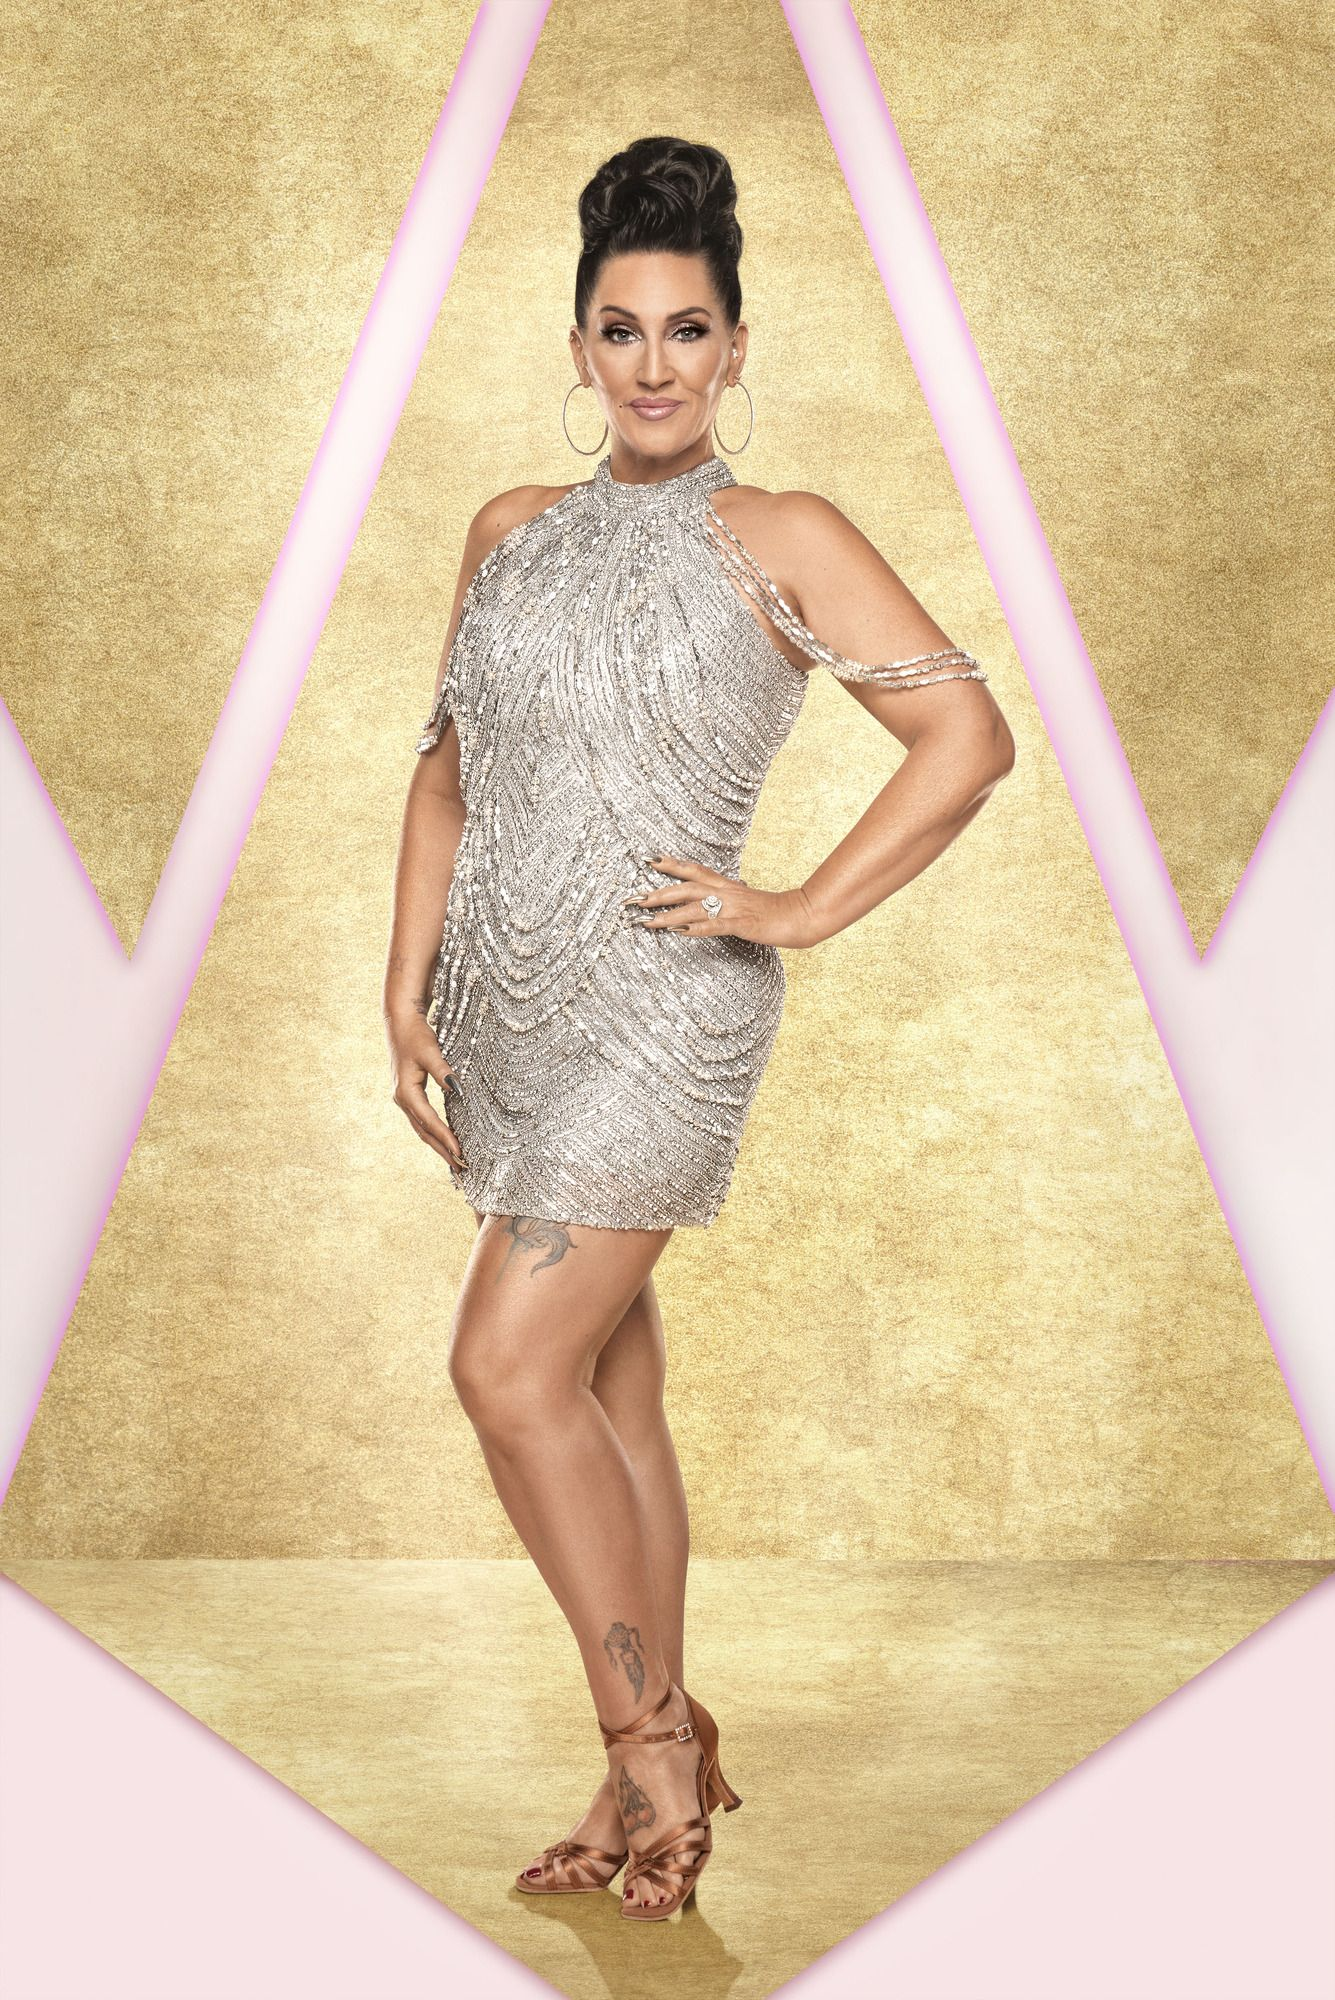 Strictly Come Dancing's Michelle Visage reveals how she'll take criticism on the show